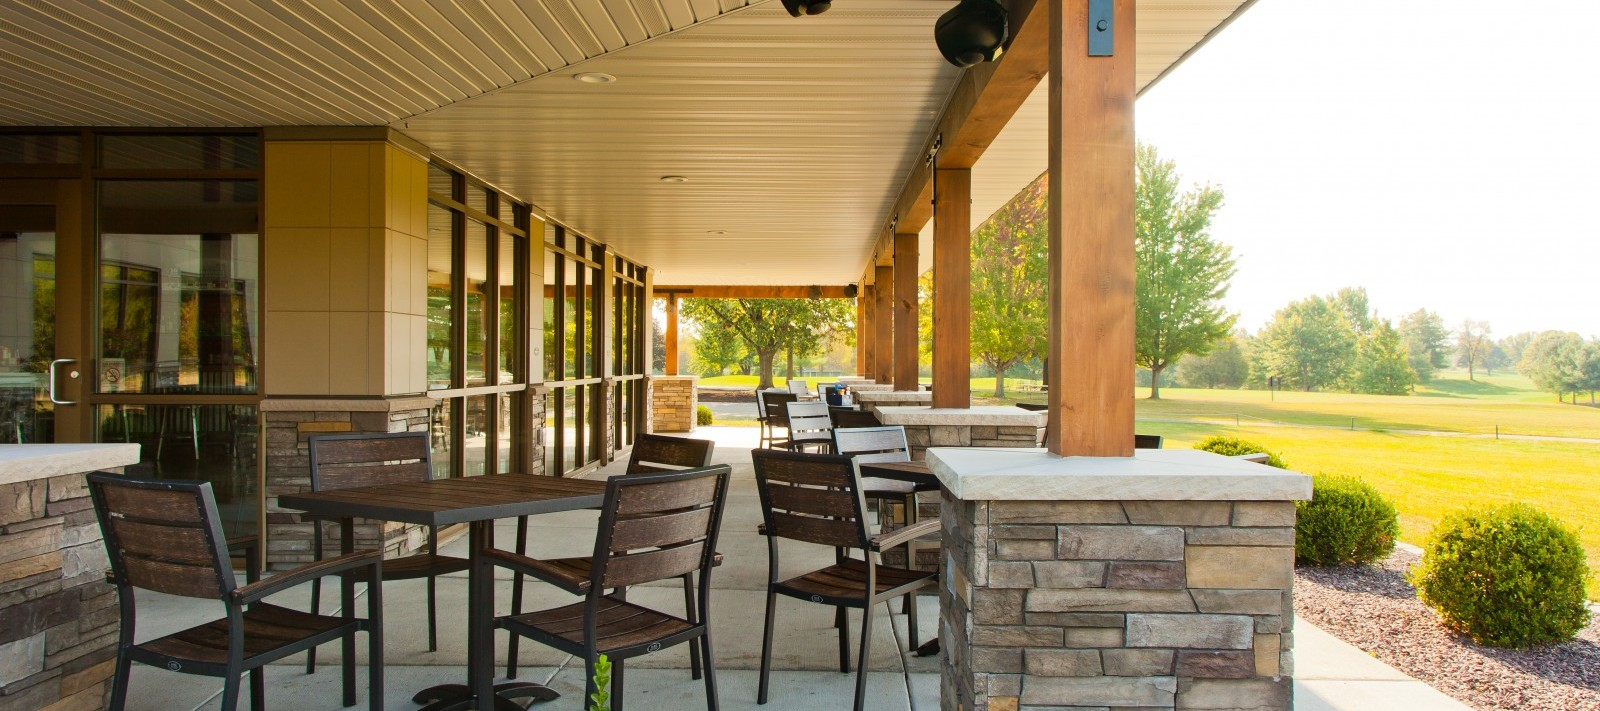 Oak Run Golf Course exterior patio